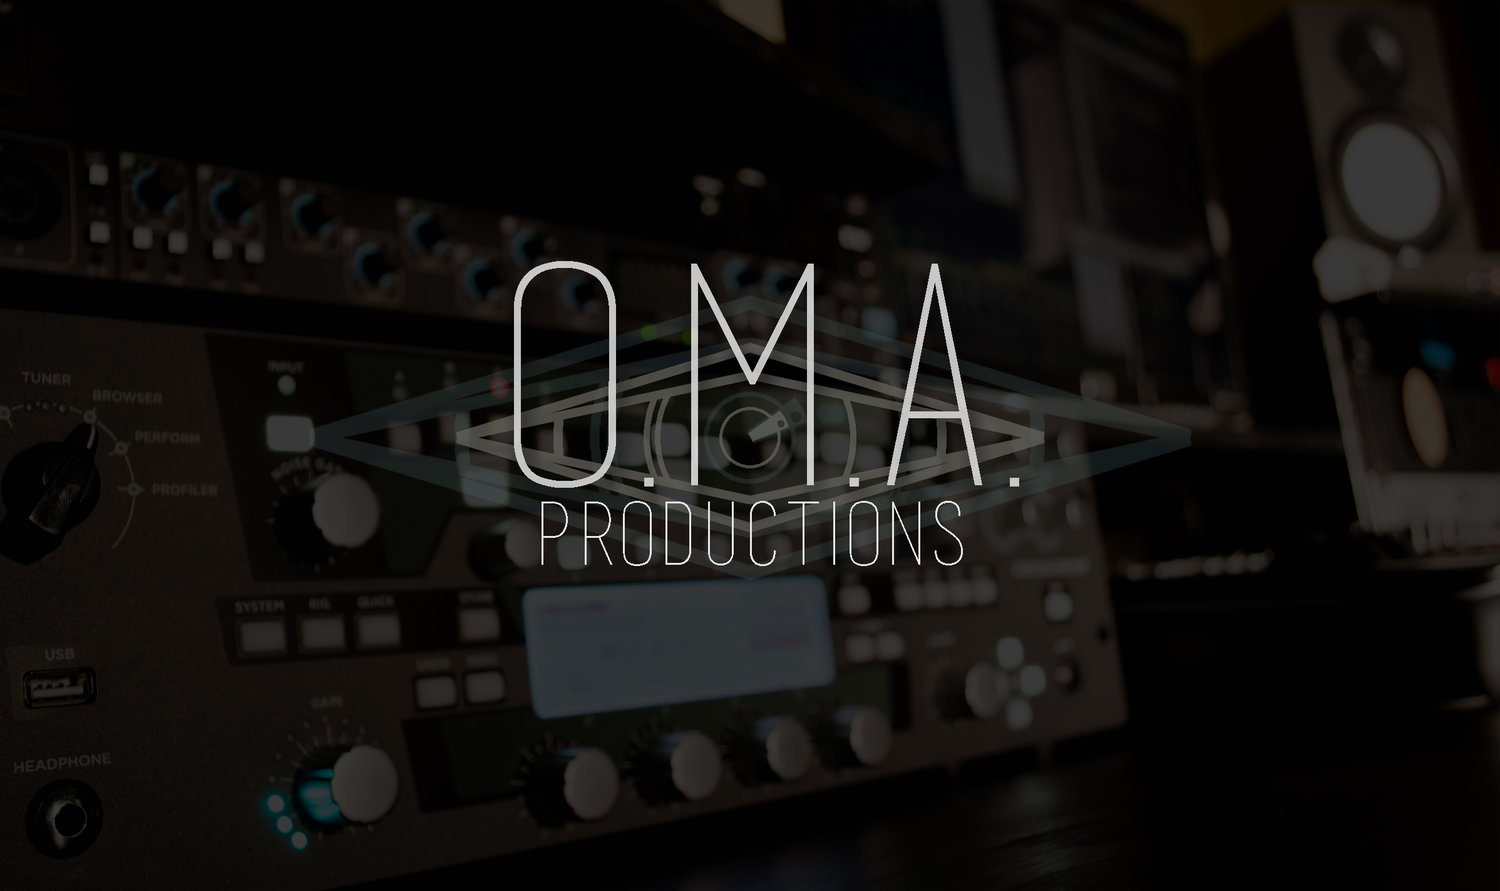 O.M.A. Productions